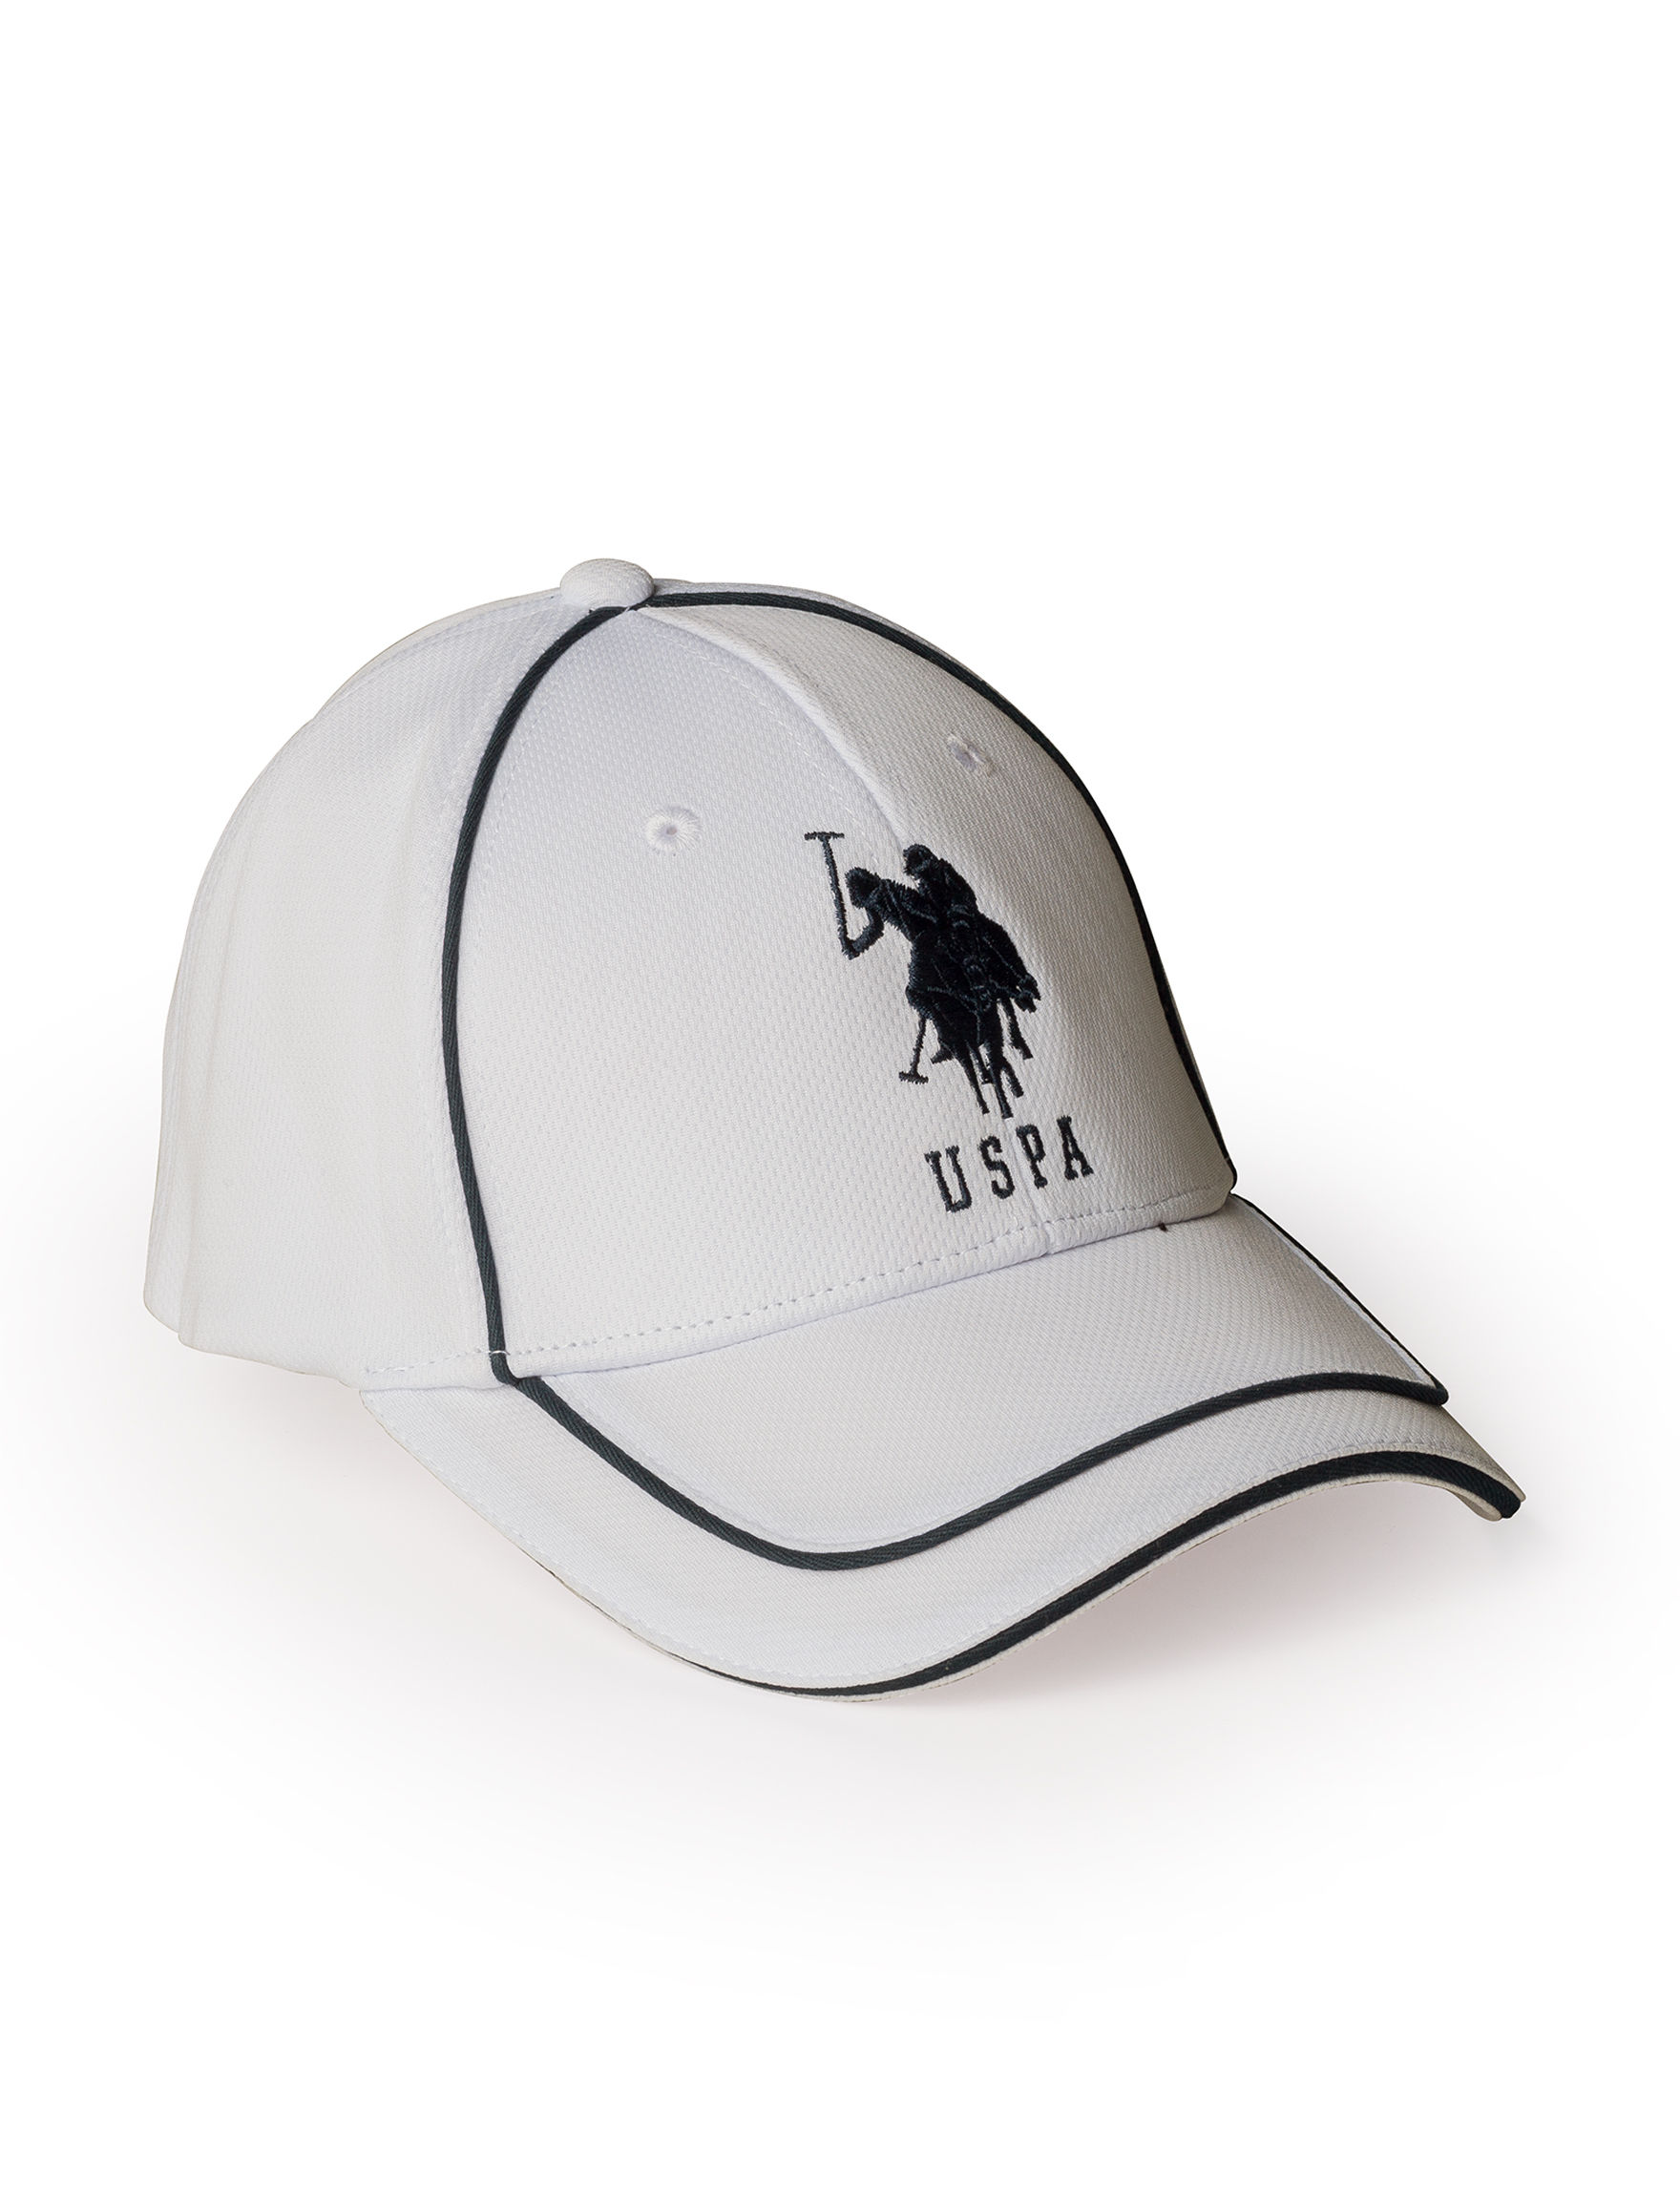 U.S. Polo Assn. White